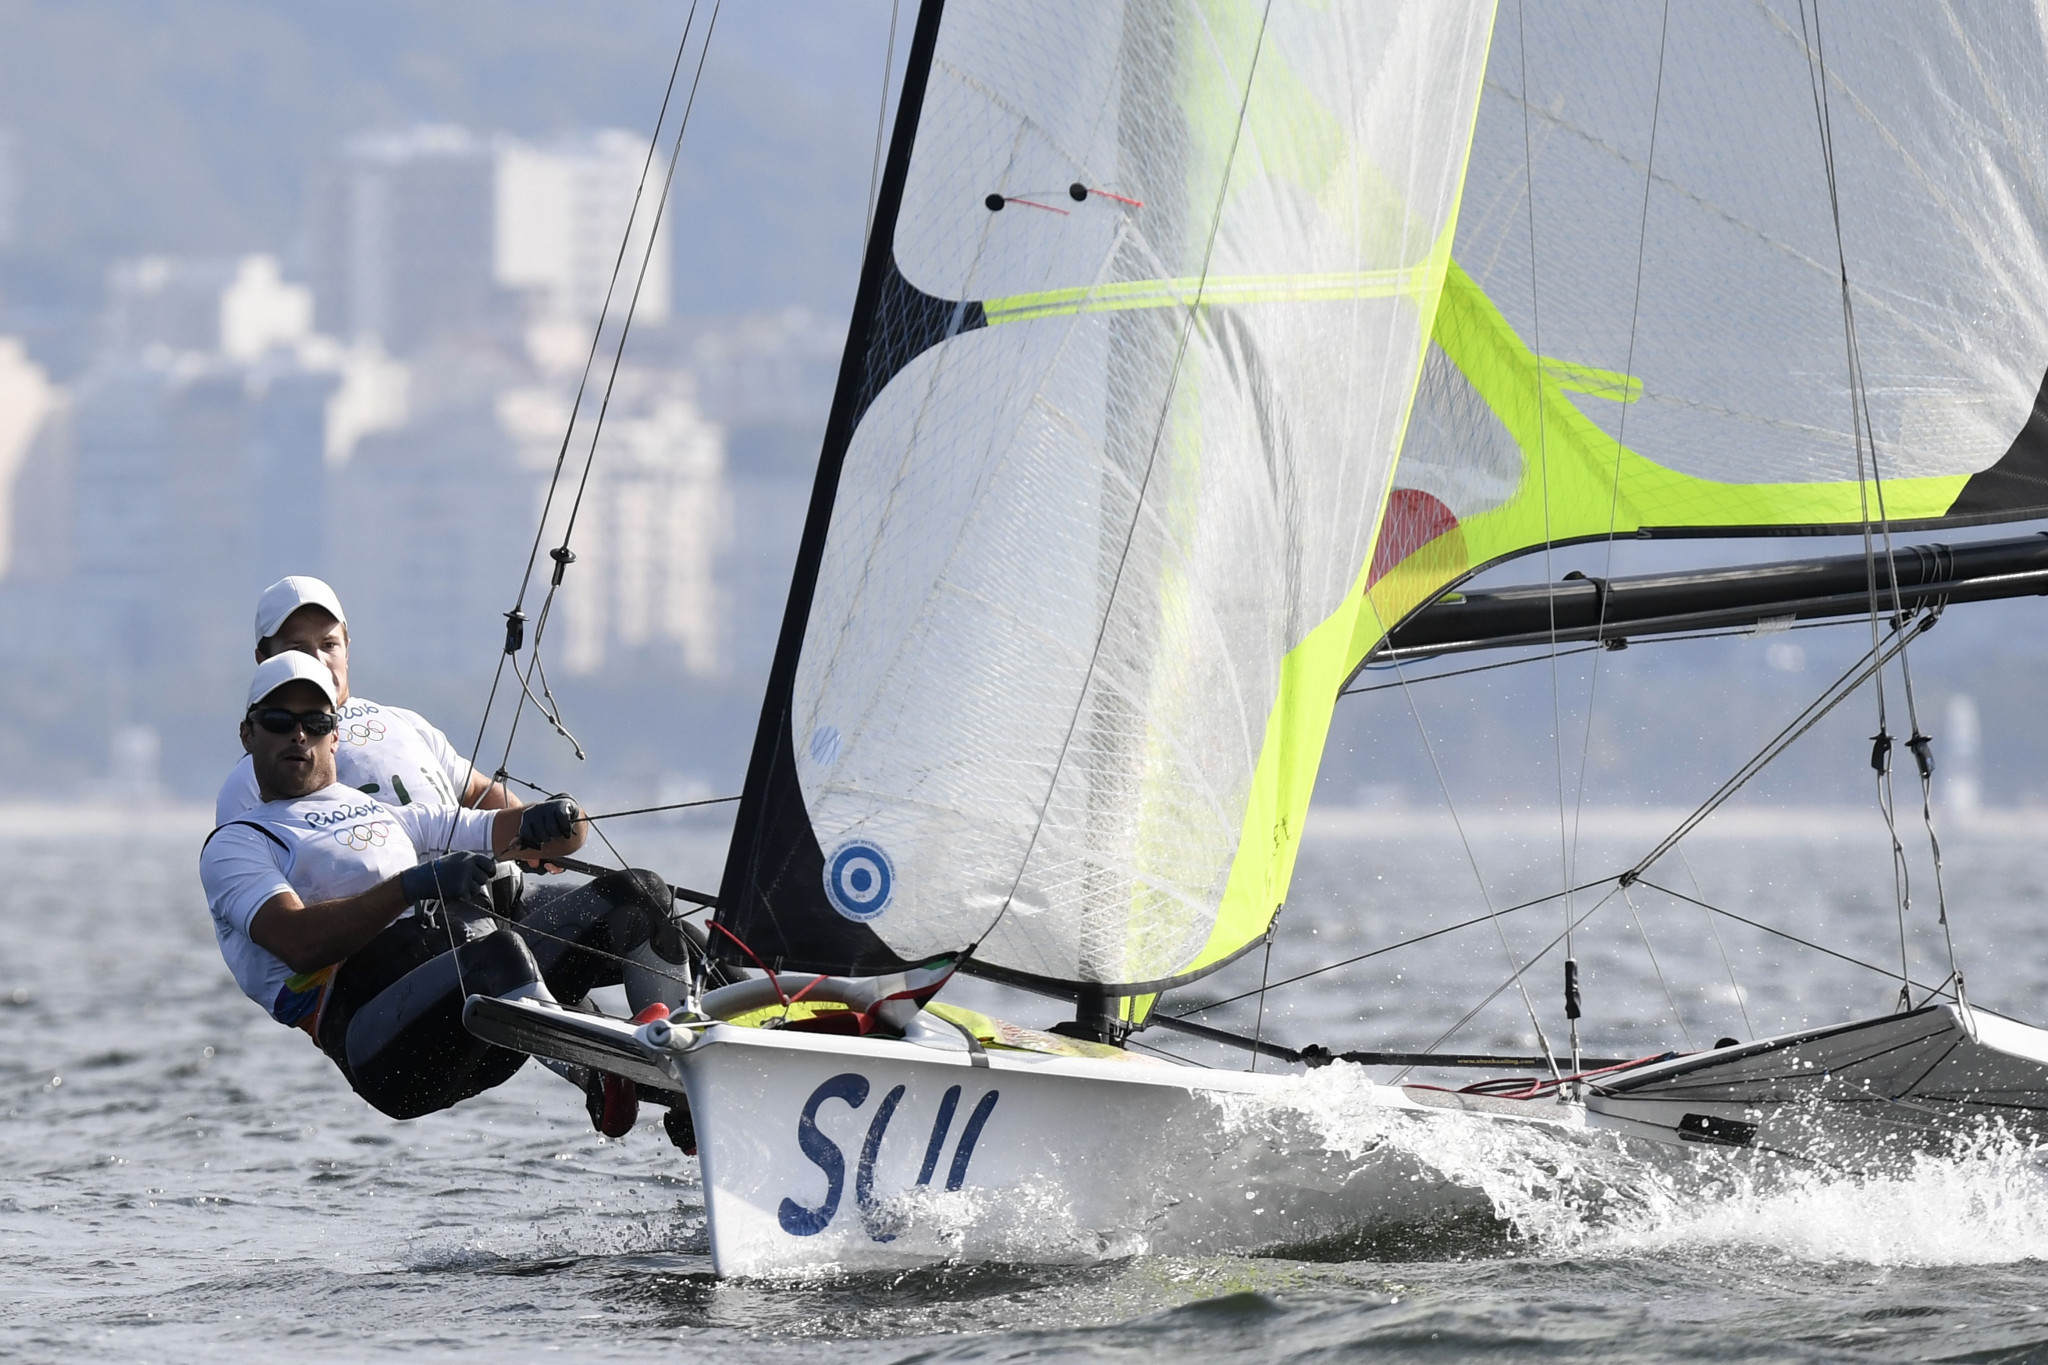 Sailors and windsurfer named to Swiss team for Tokyo 2020